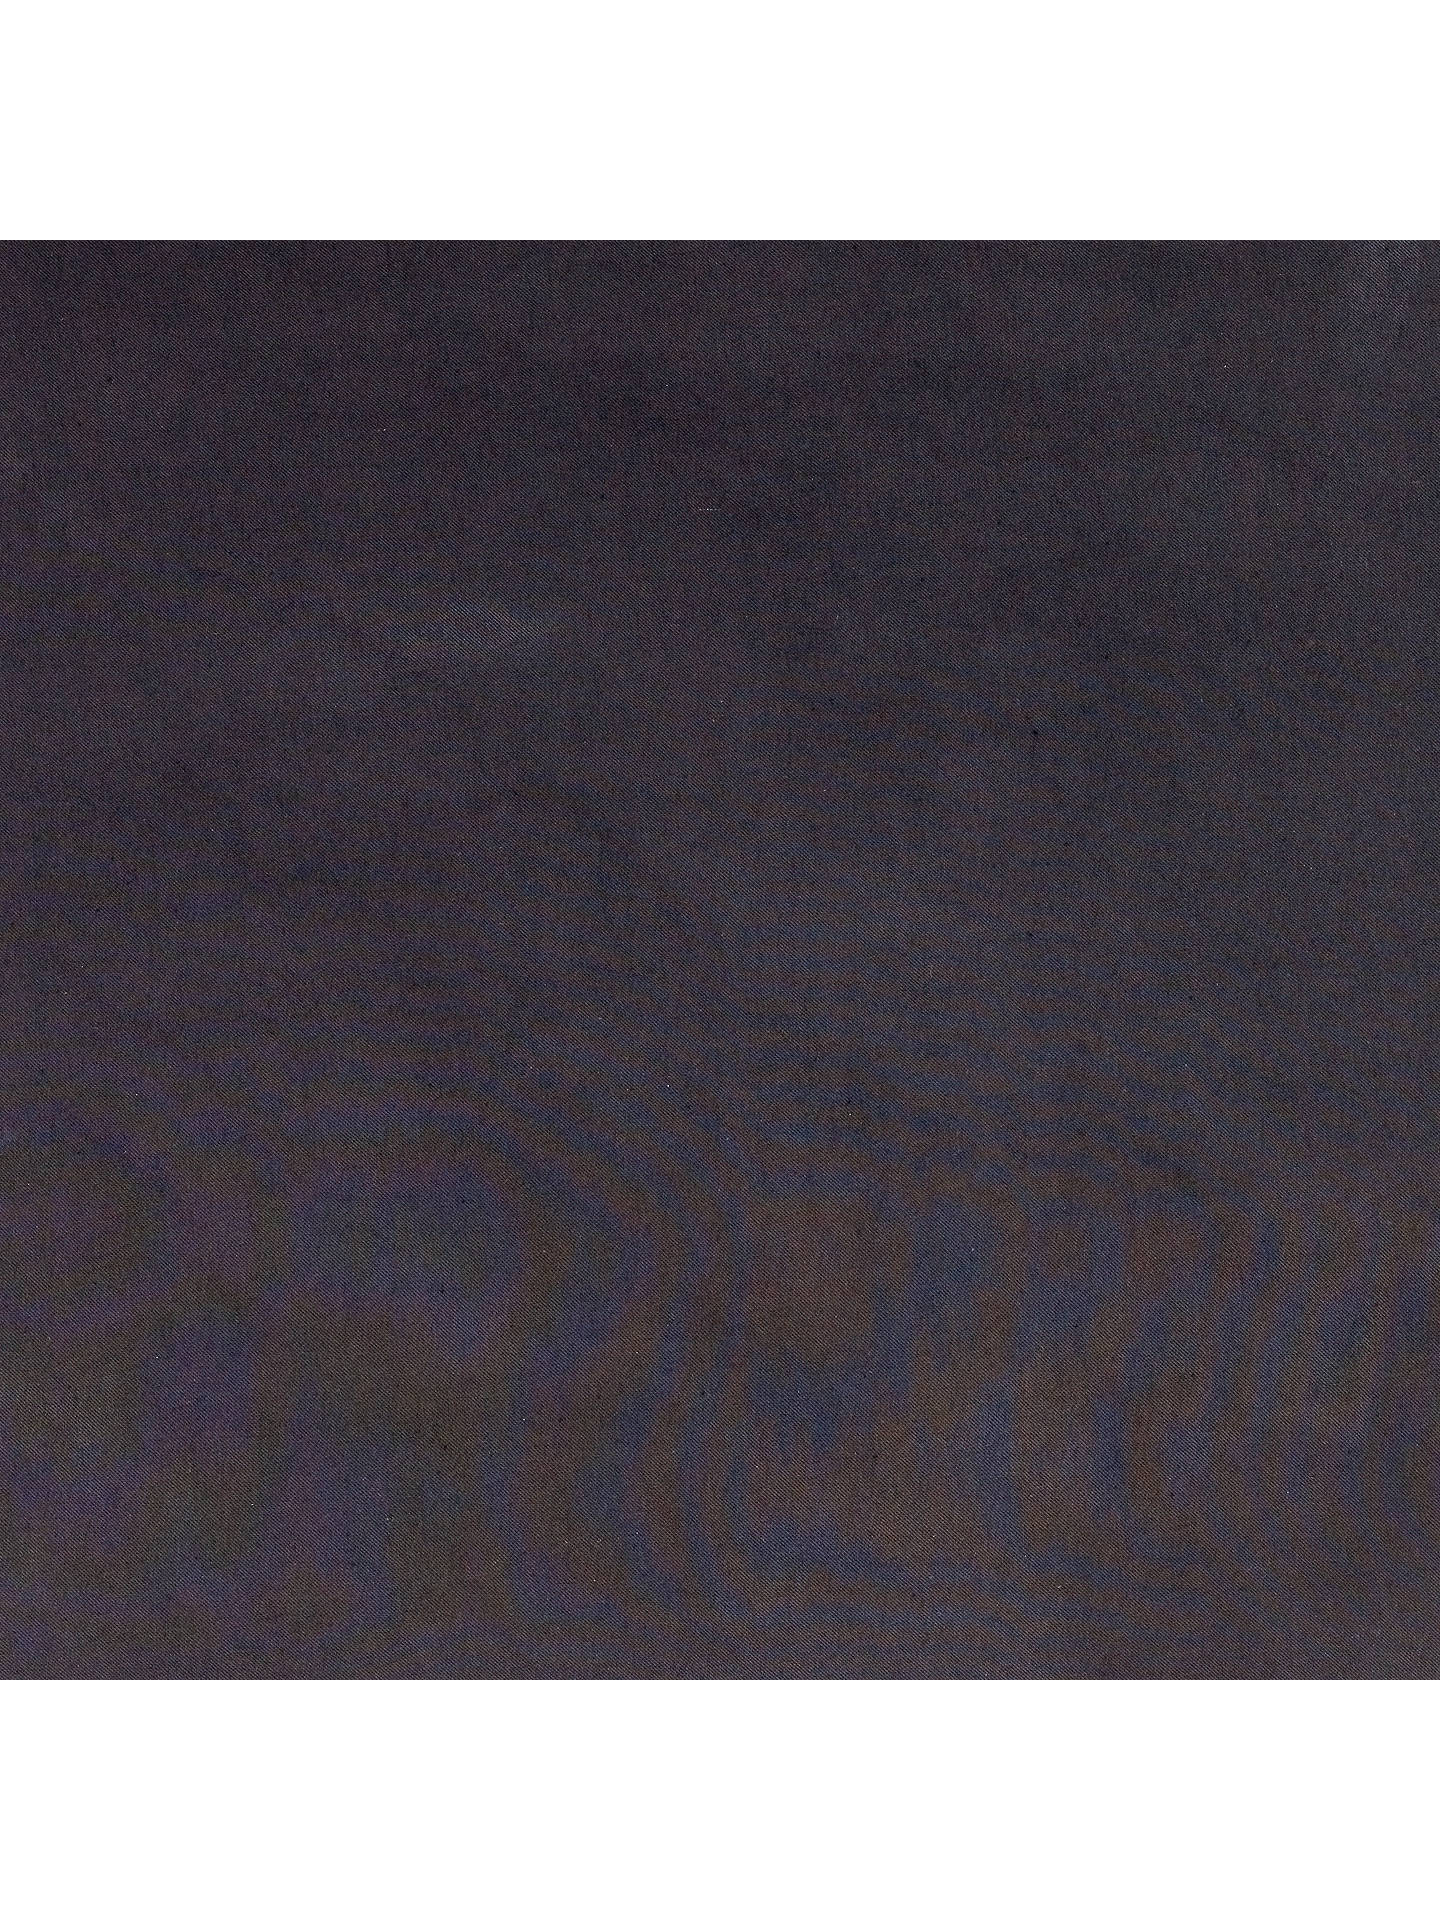 Buy John Lewis & Partners Bolton Twill Furnishing Fabric, Black Online at johnlewis.com